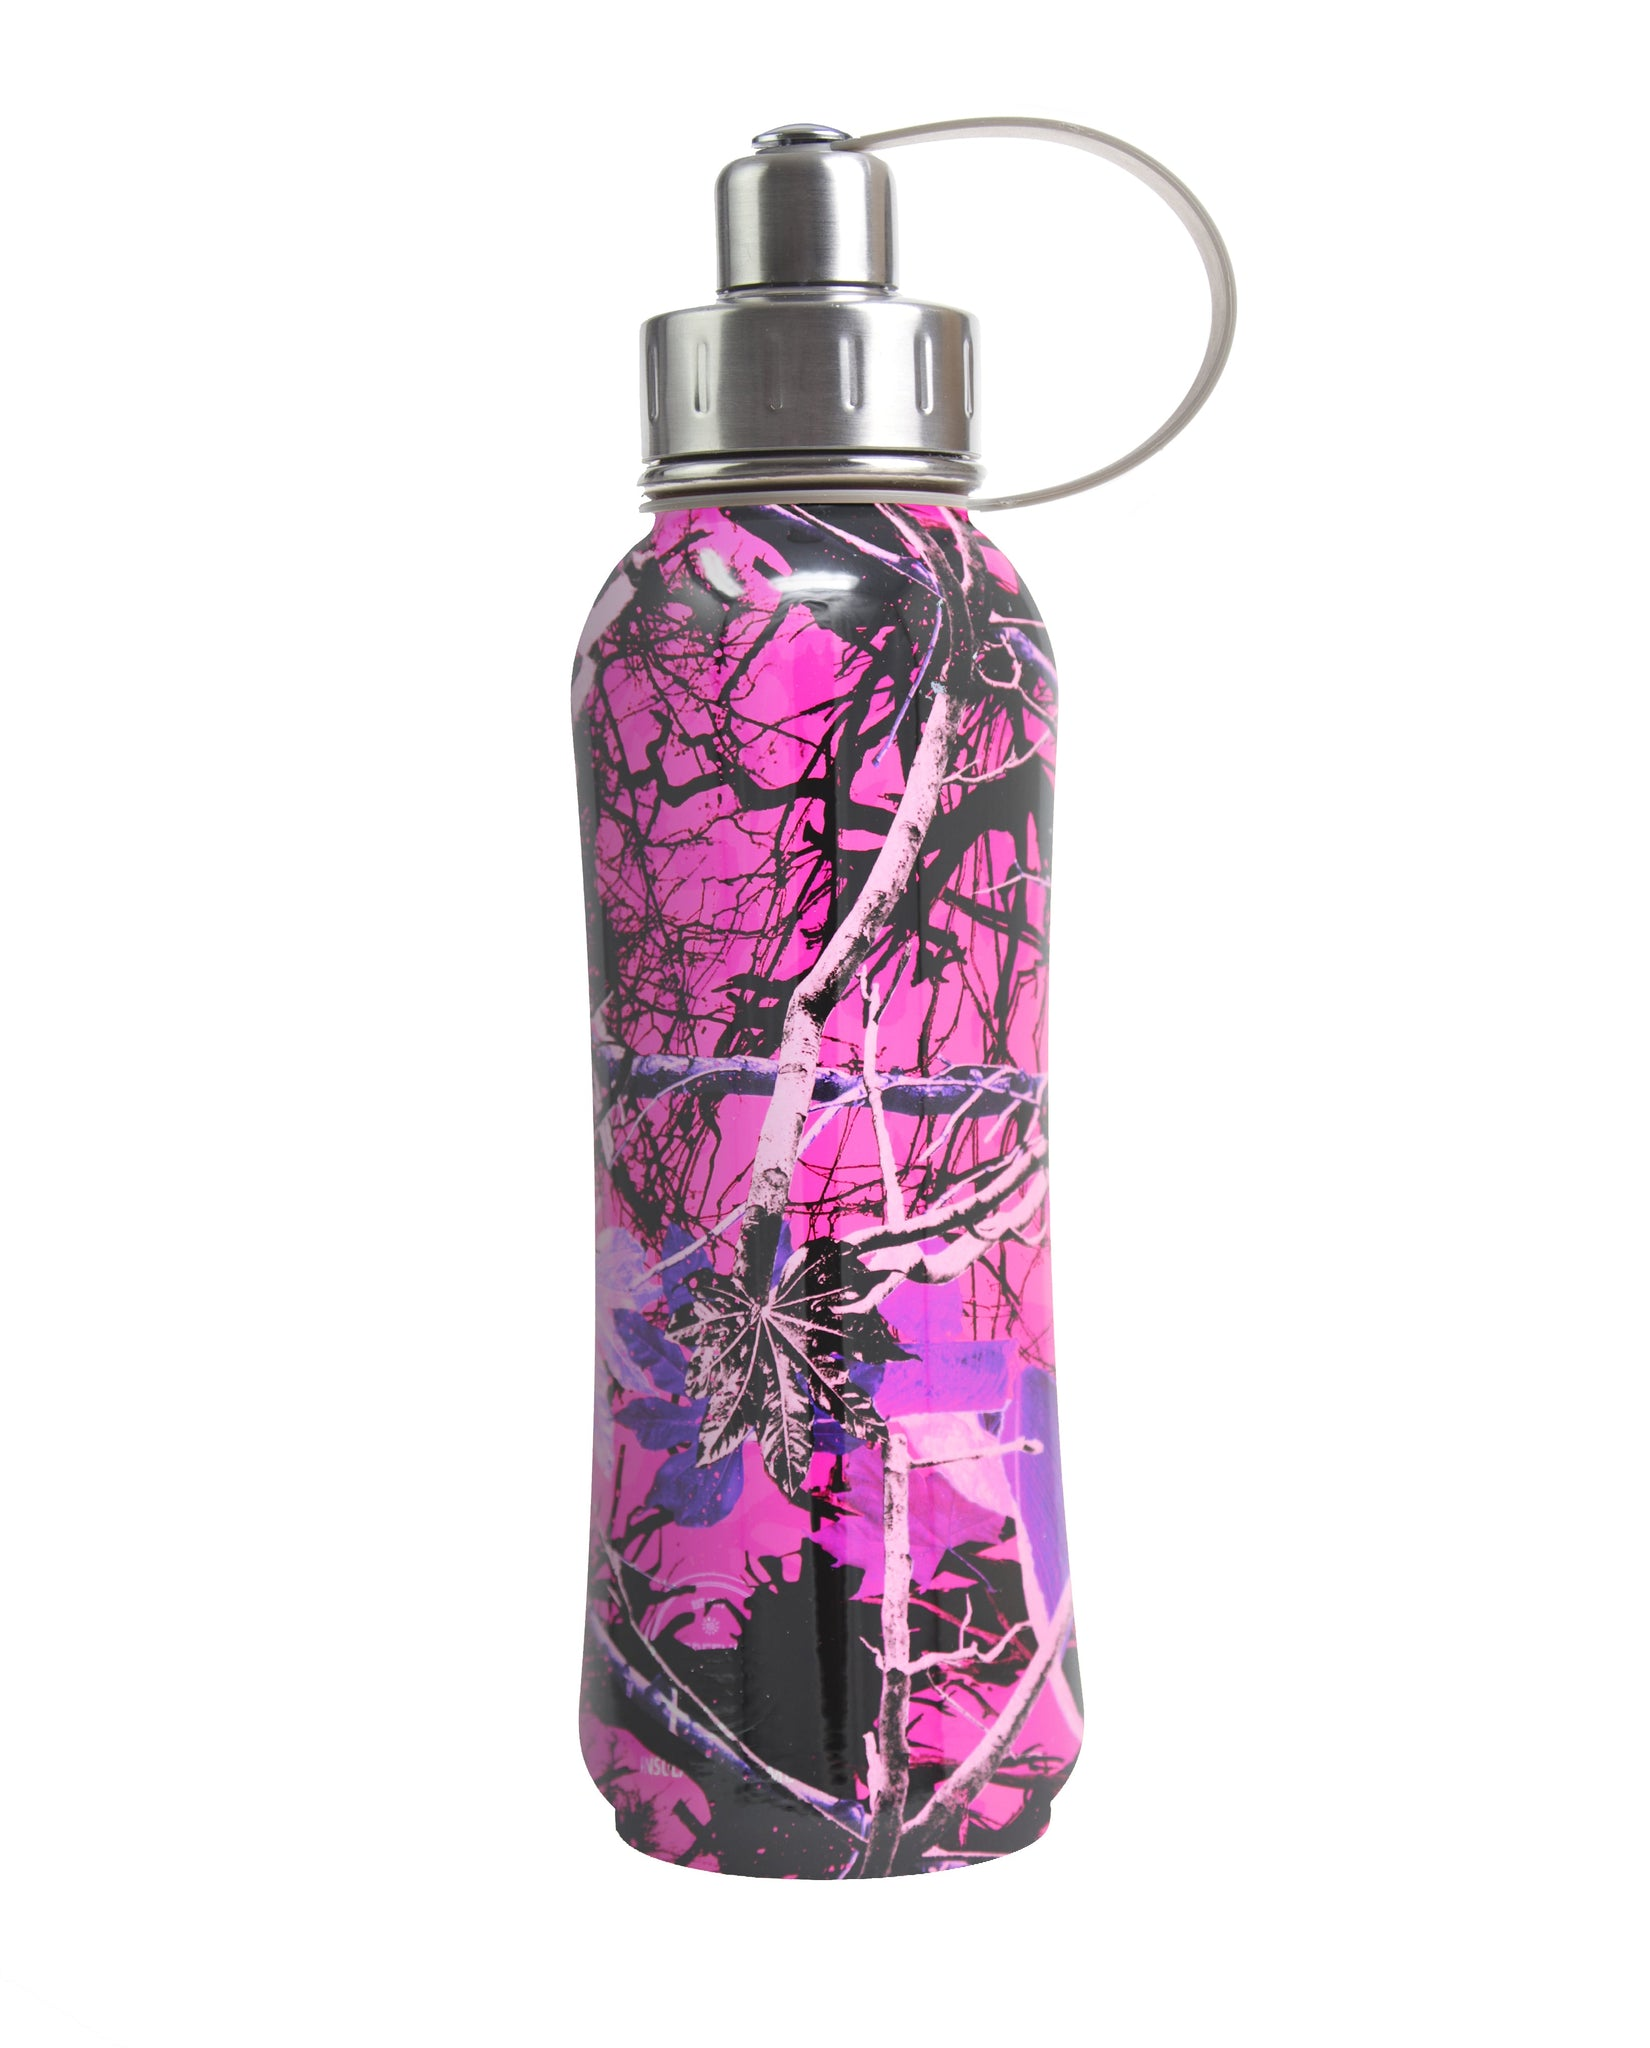 800 ml Pink Luxembourg Garden triple insulated vacuum stainless steel rubberized water bottle silver lid